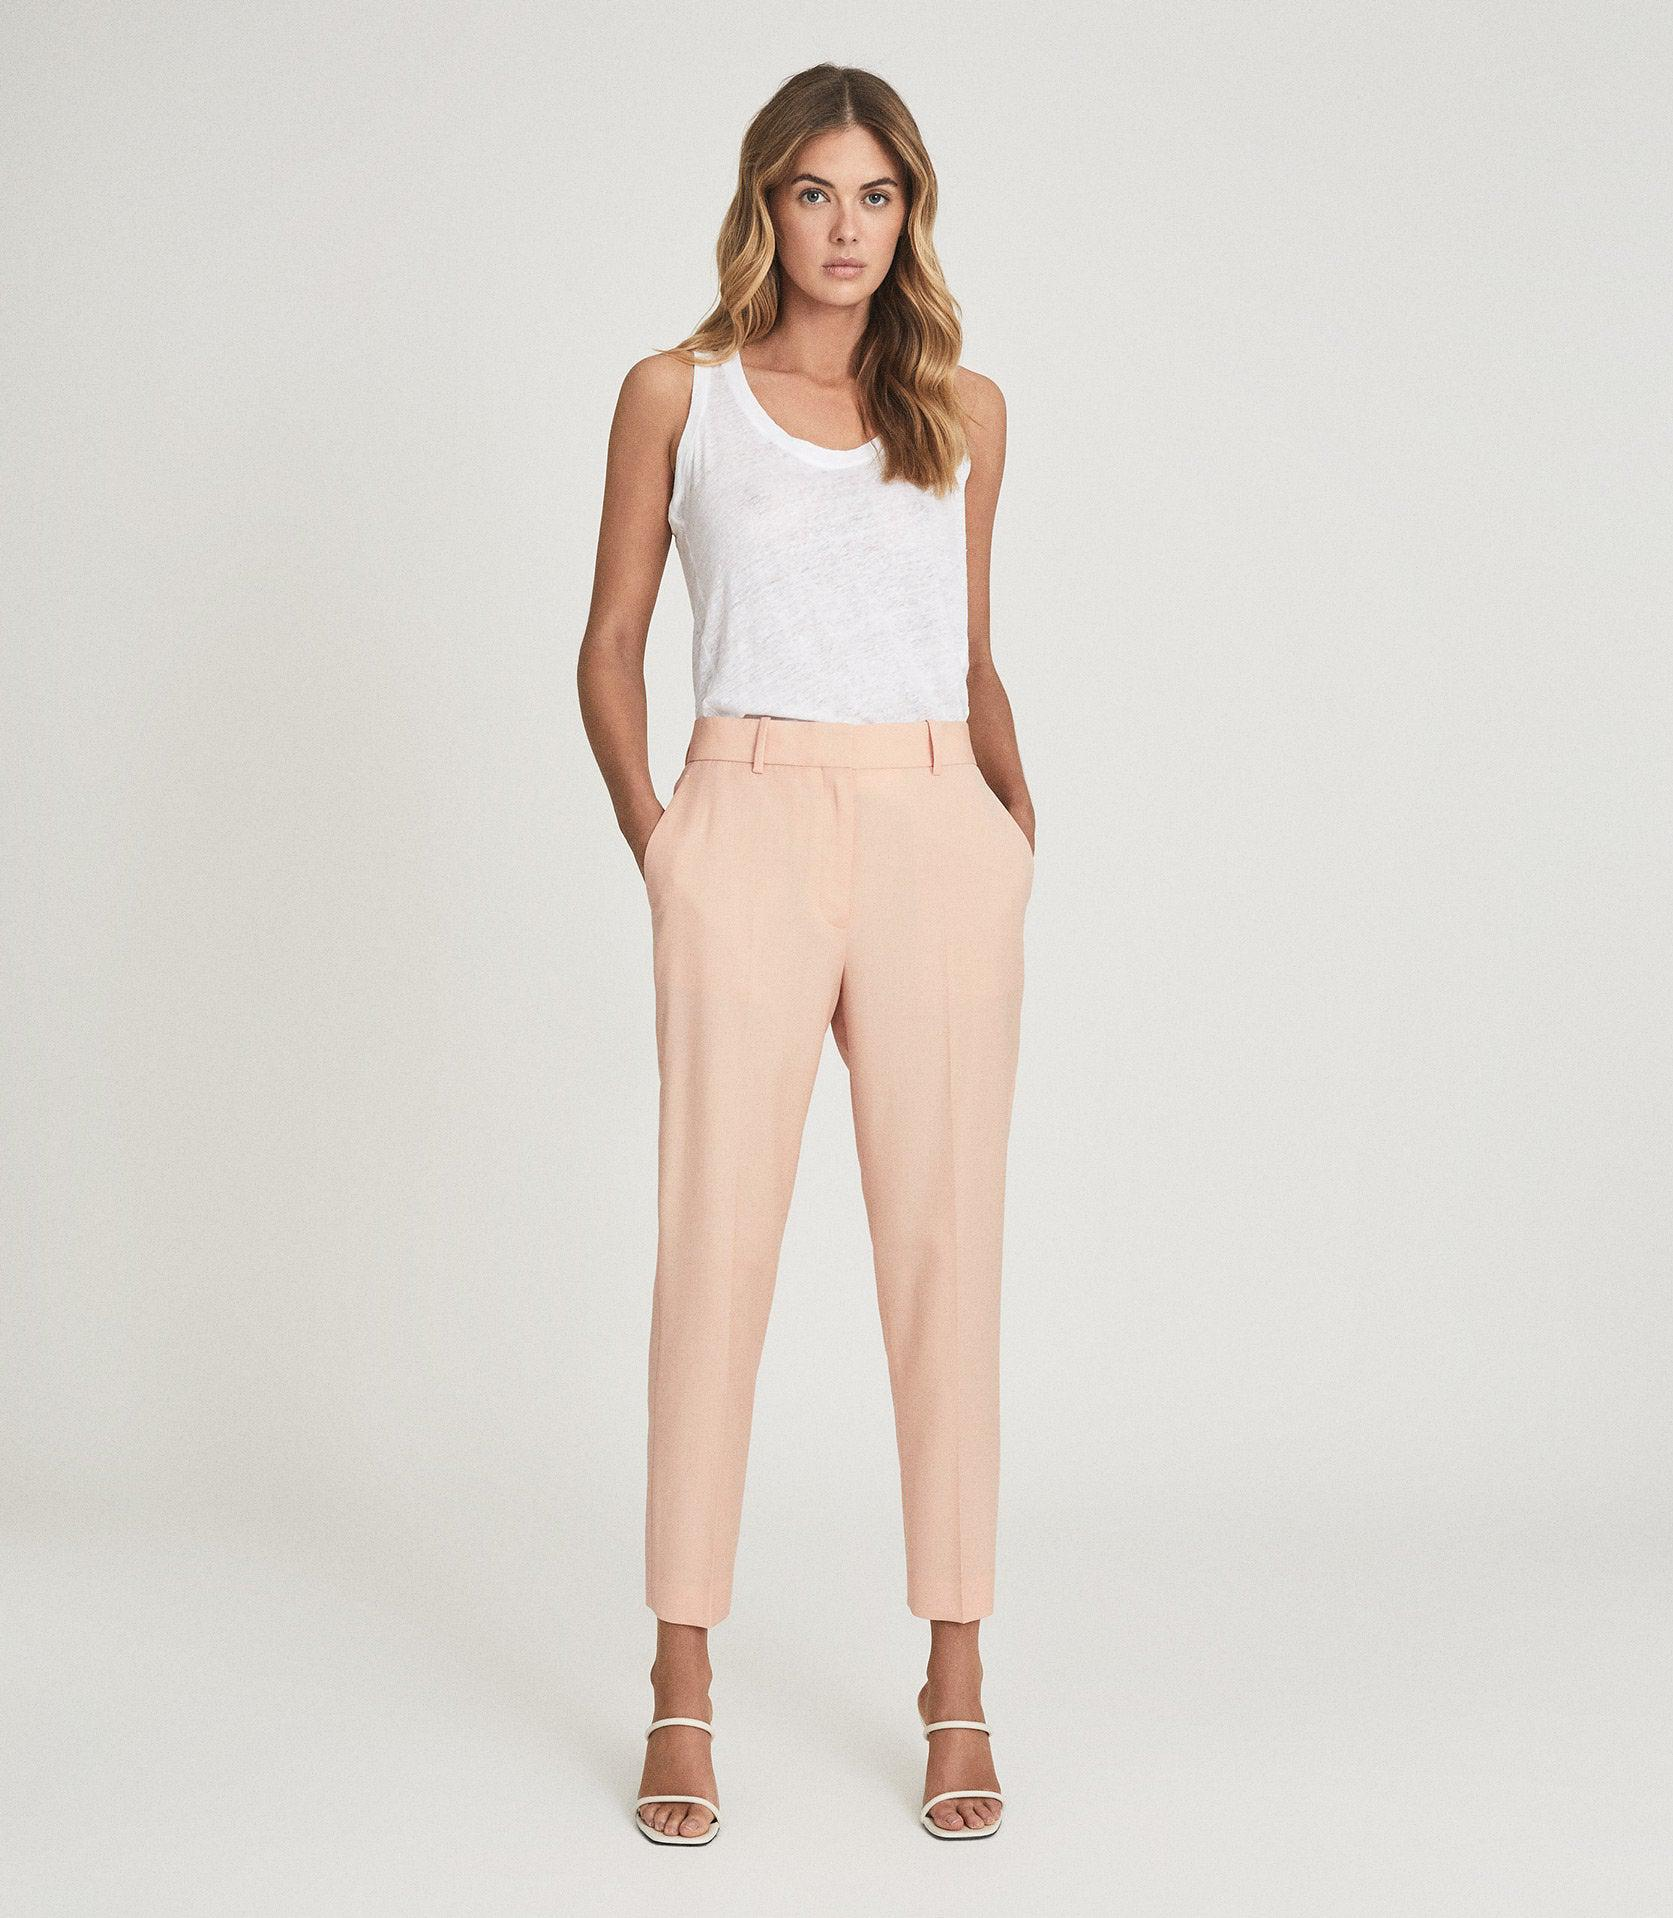 EVELYN - WOOL LINEN BLEND SLIM FIT TROUSERS 1